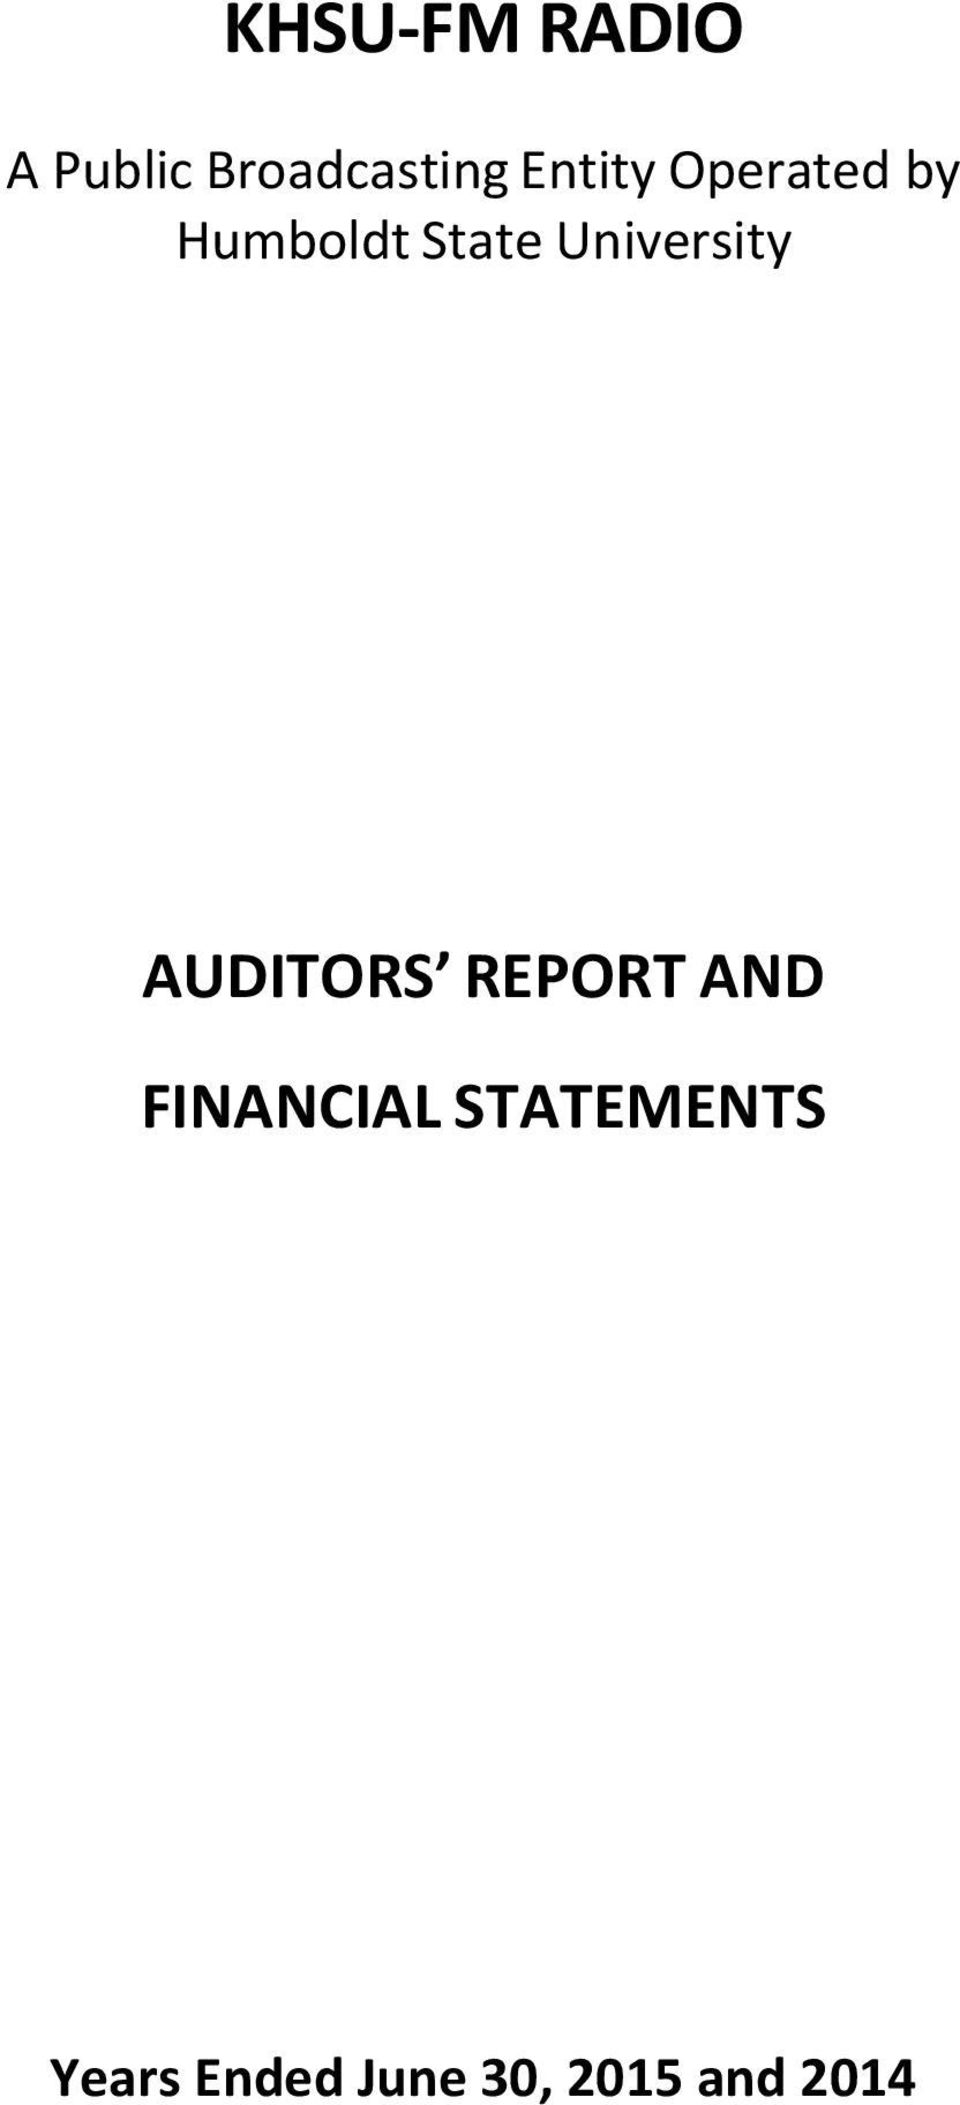 University AUDITORS REPORT AND